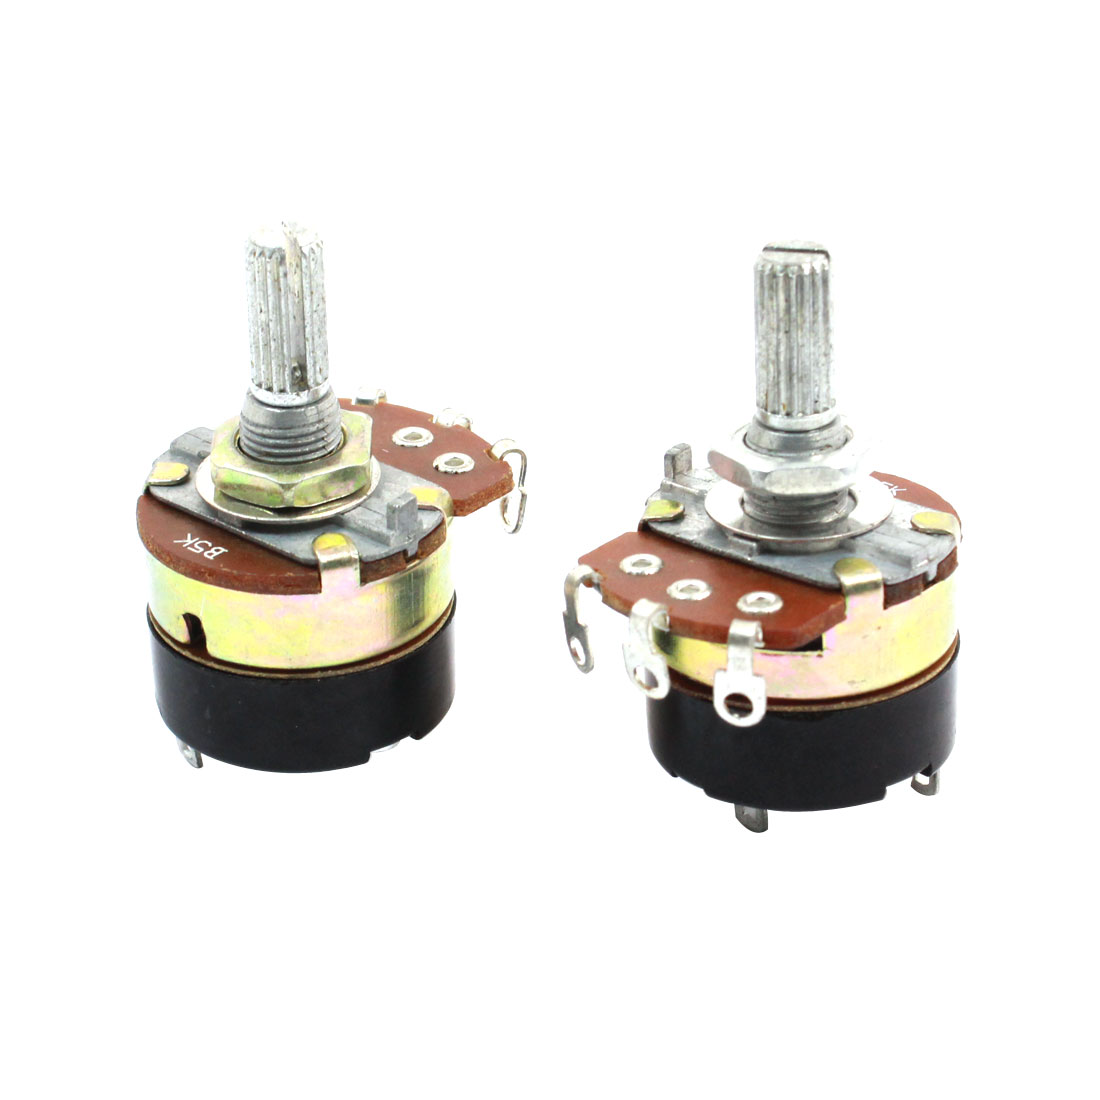 2Pcs B5K 5K Ohm Single Linear Rotary Switch Carbon Potentiometers